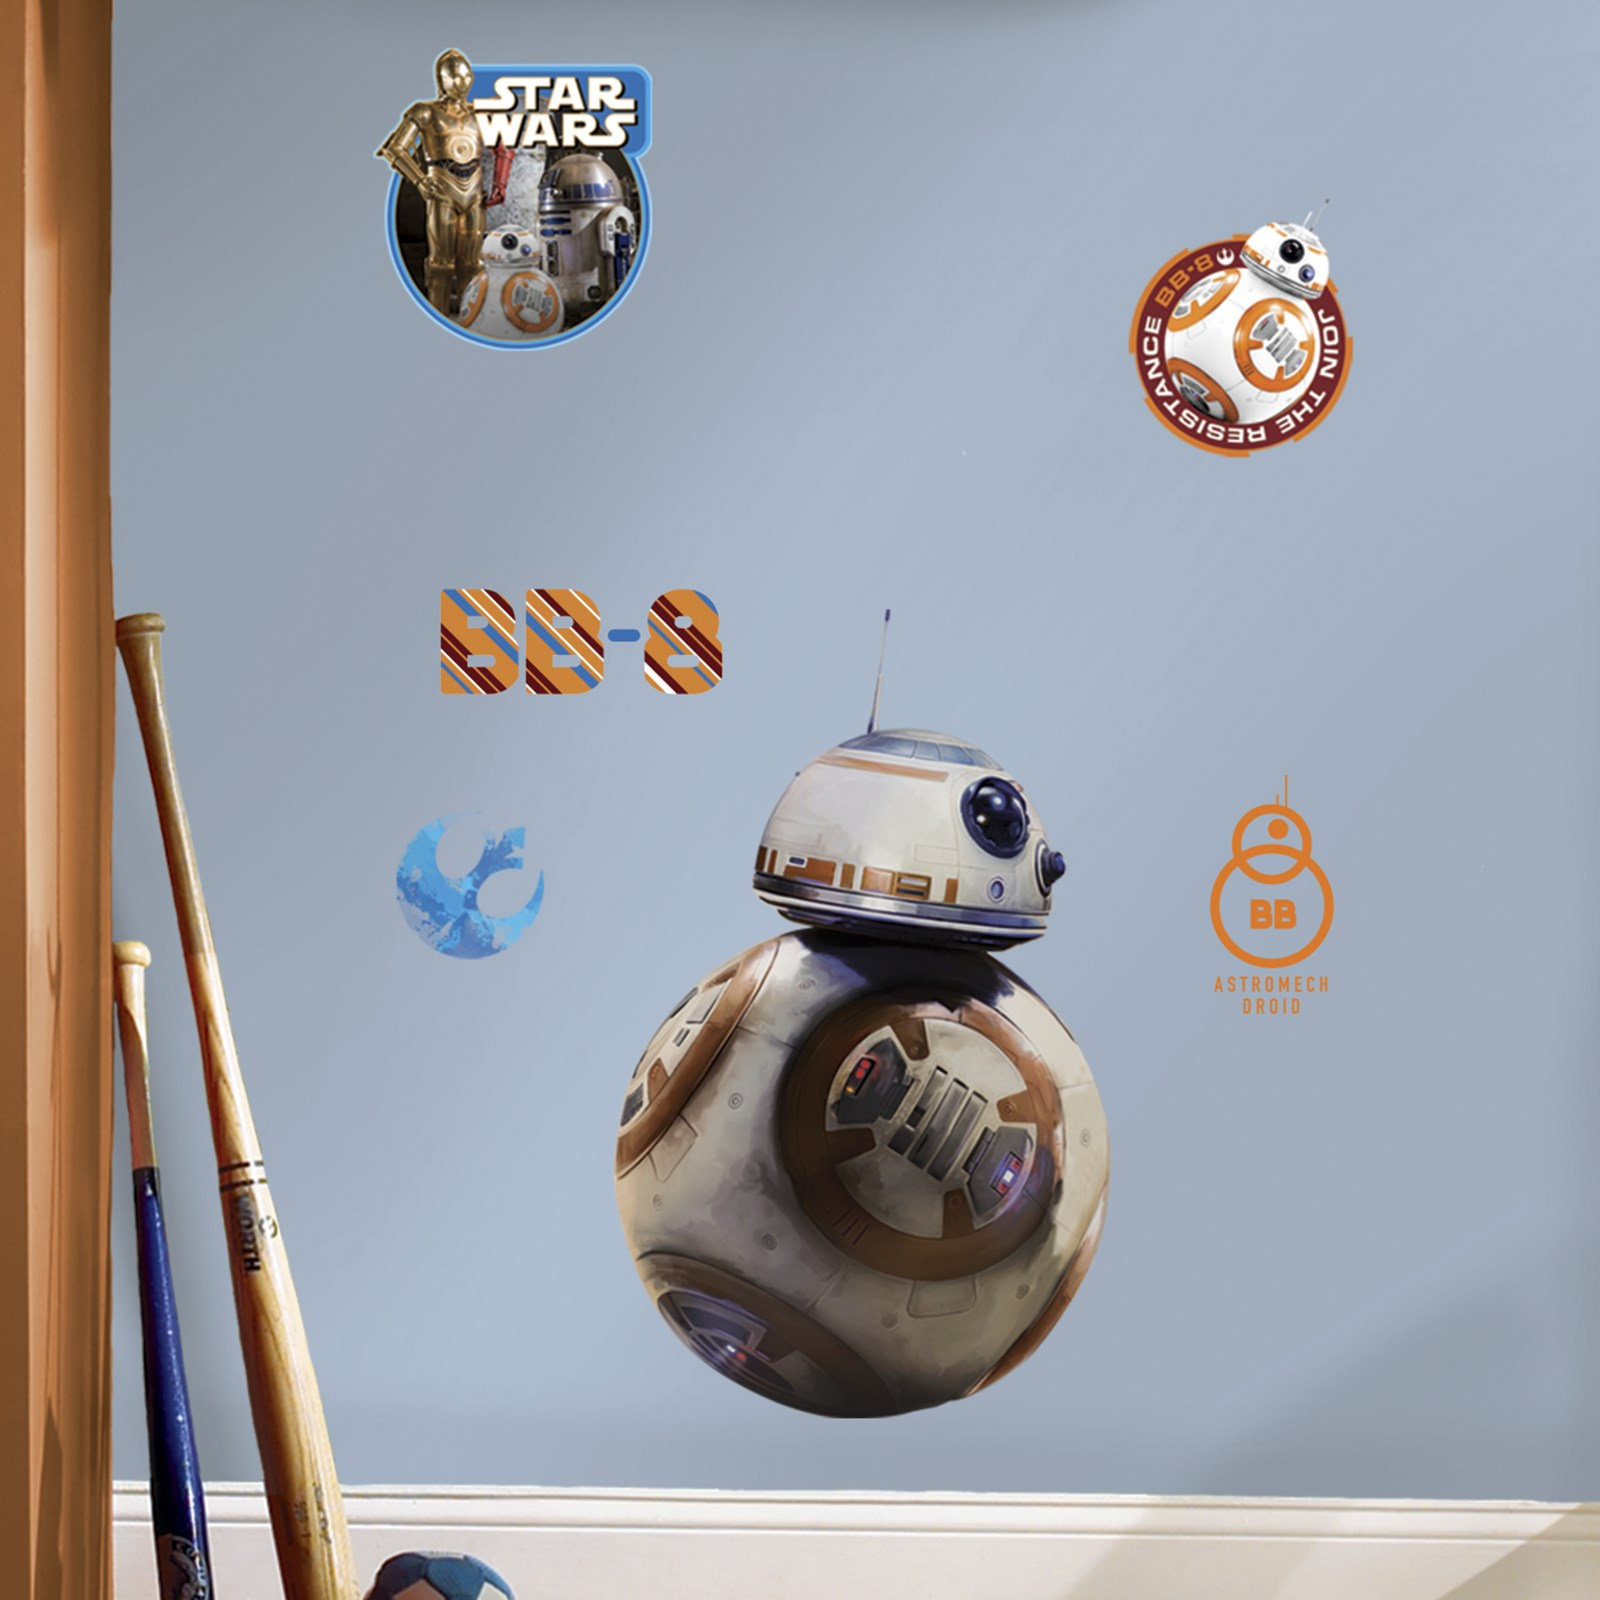 default image star wars 7 the force awakens bb 8 giant wall decal